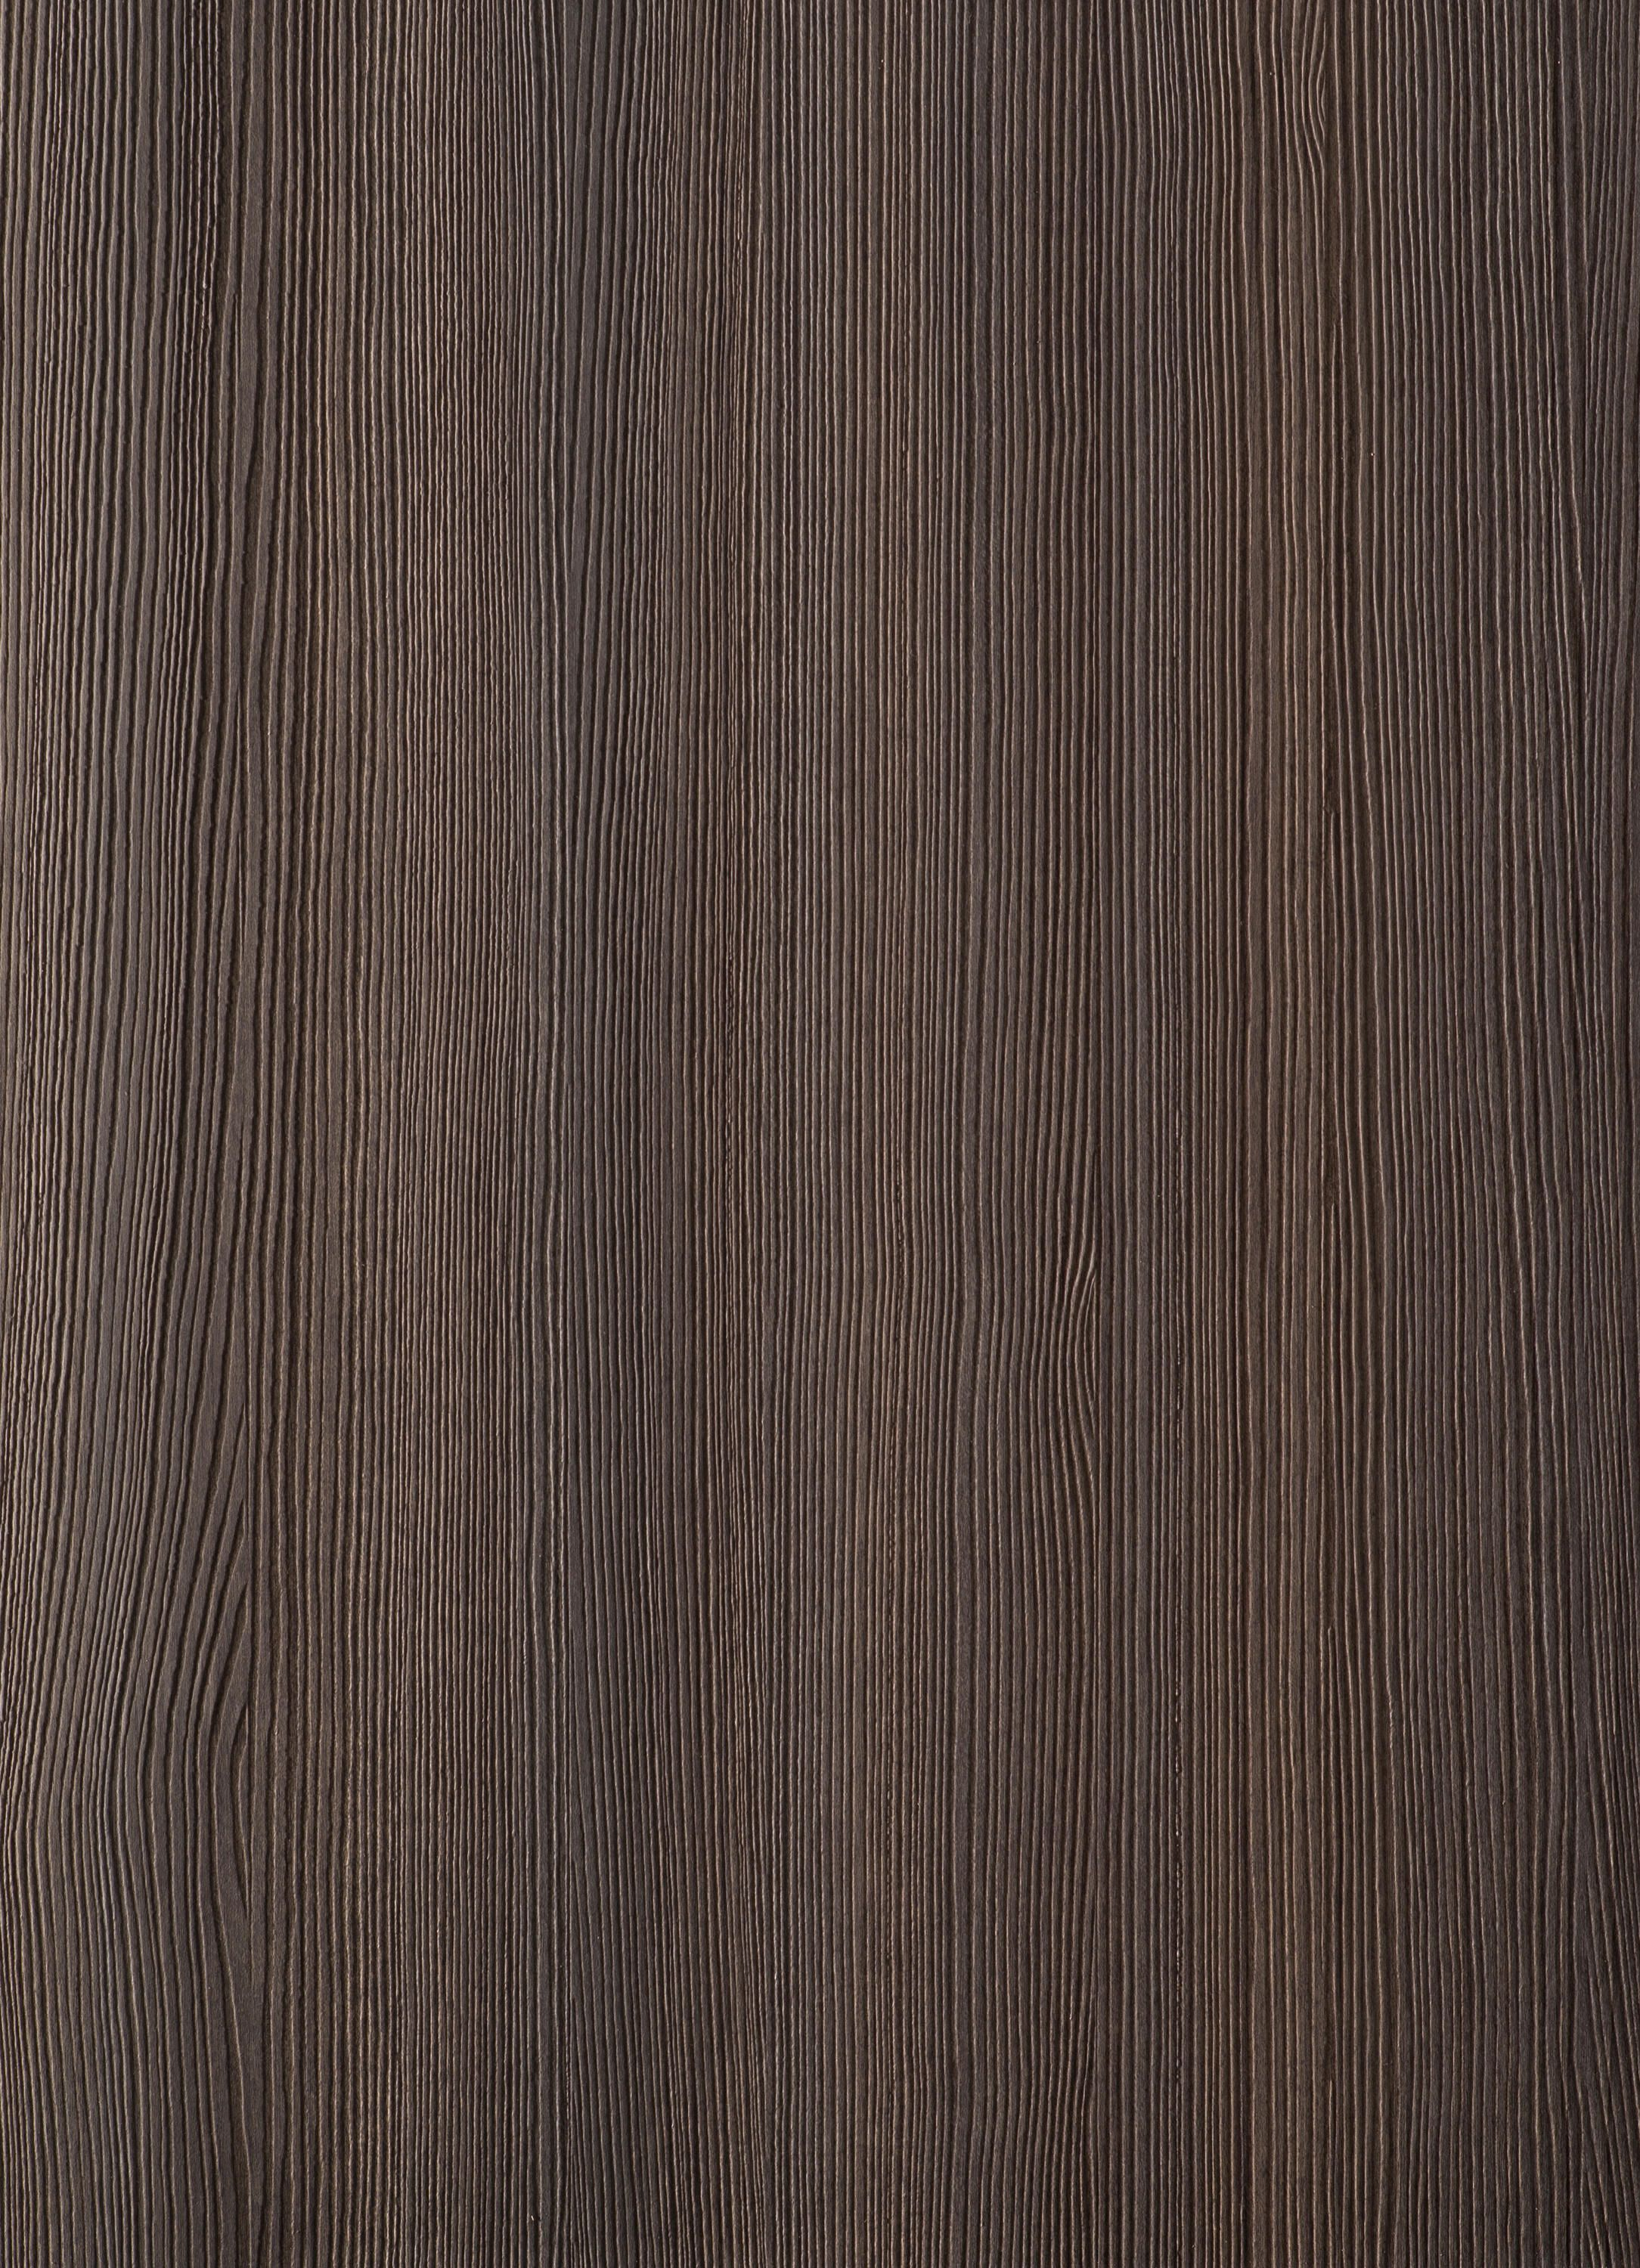 Scultura Lg99 By Cleaf Wood Panels Wood Floor Texture